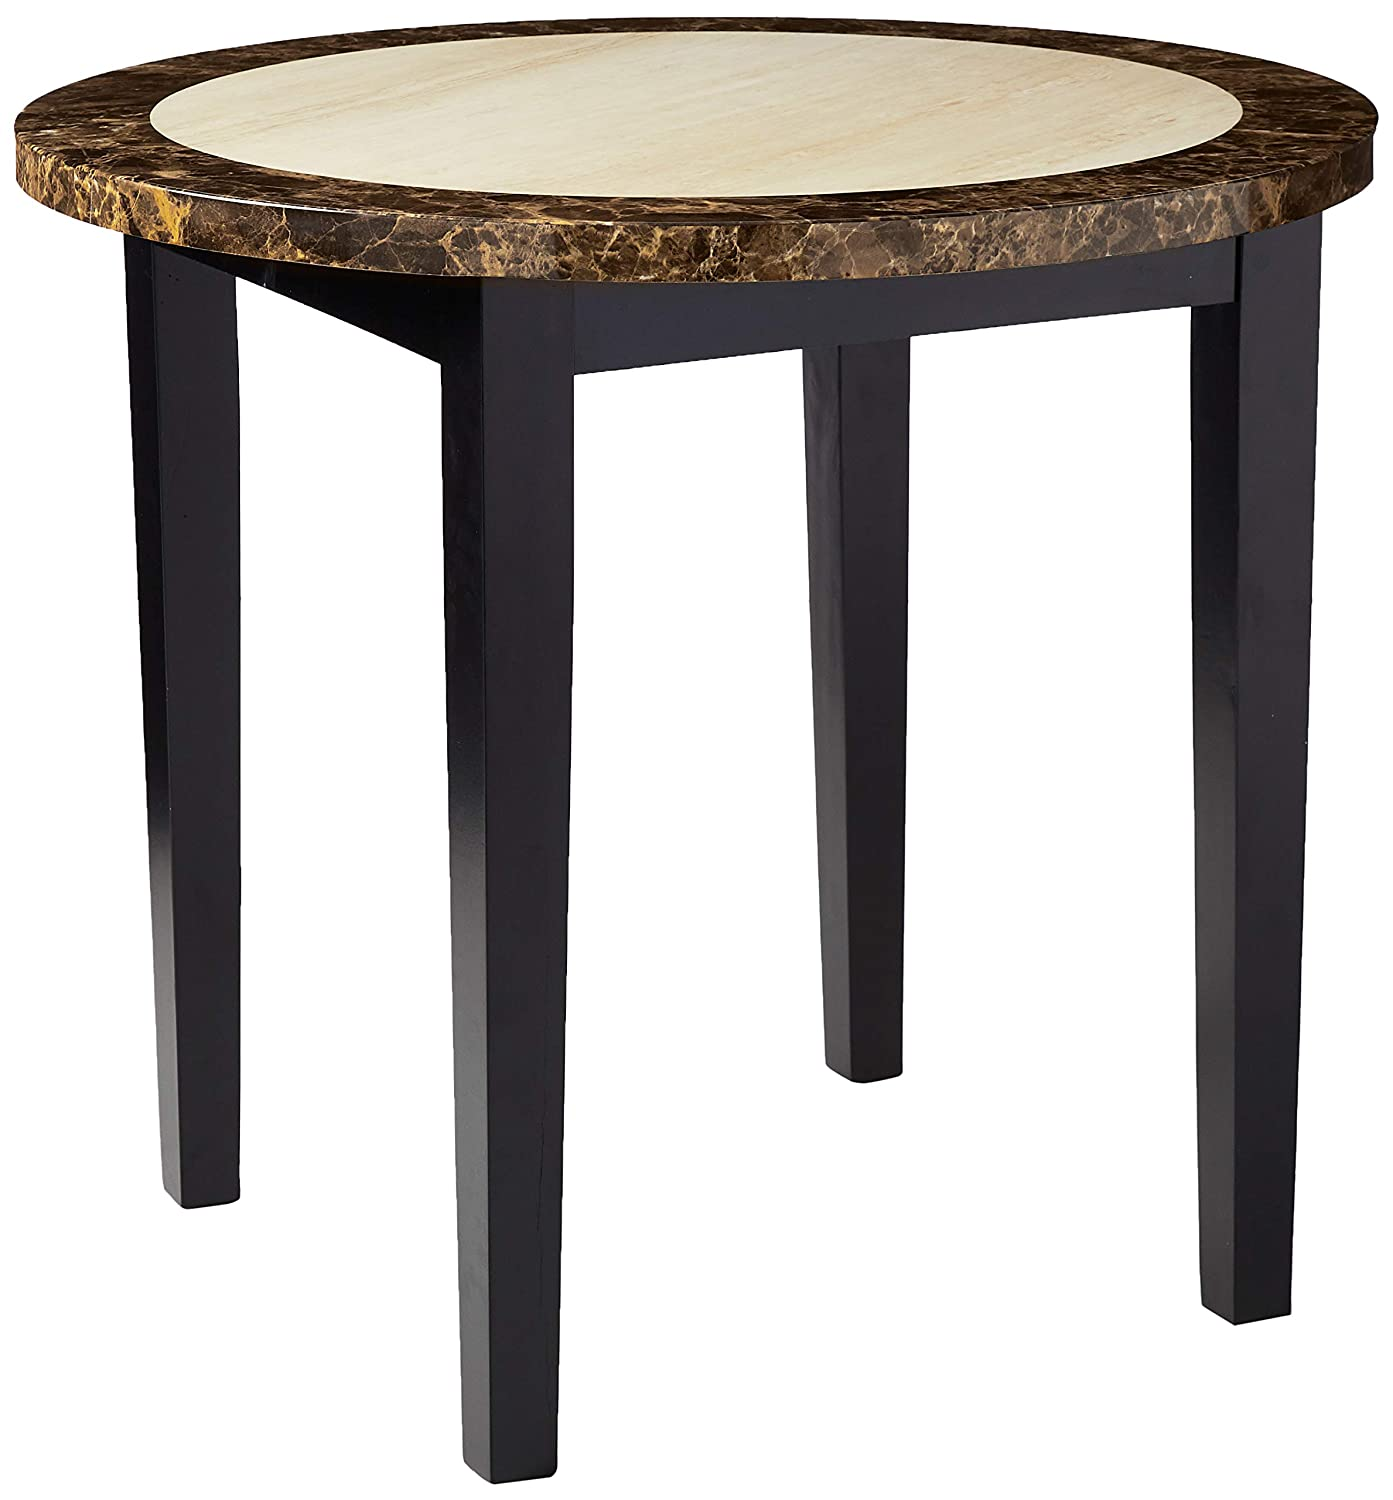 Creation Yusheng Square Dining Table, living room table with Wooden Legs, Black